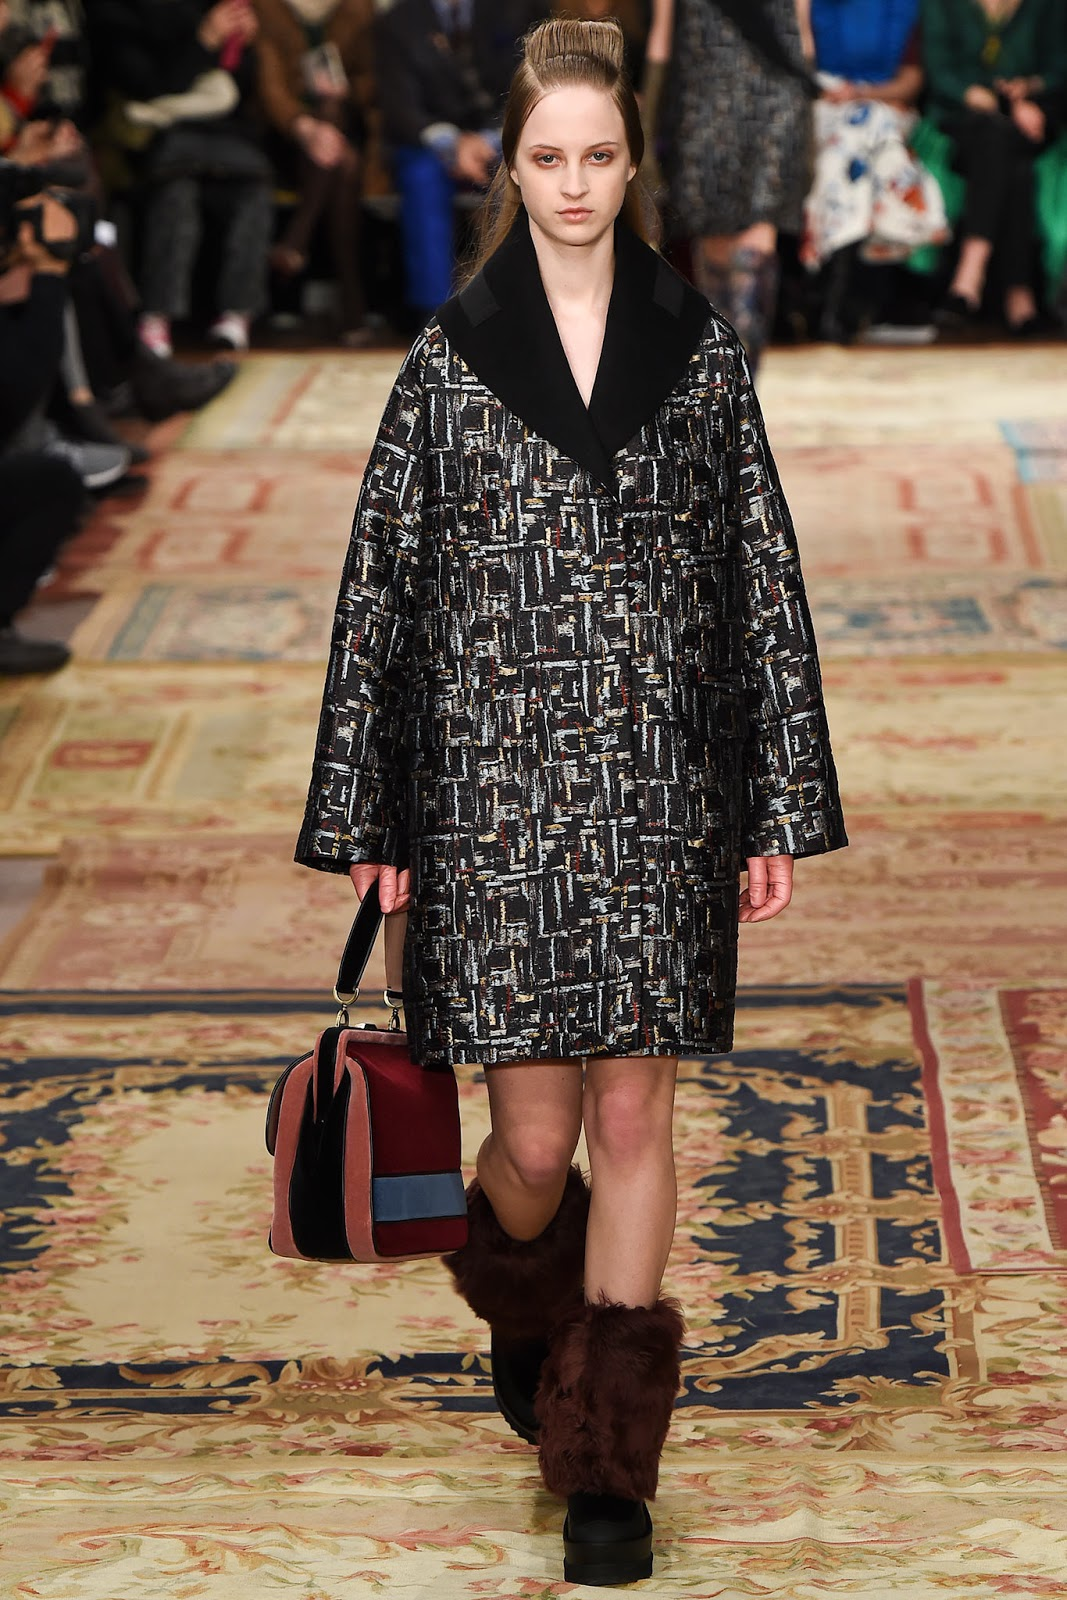 Brocade trend on AW 2015 runway at Antonio Marras / via www.fashionedbylove.co.uk